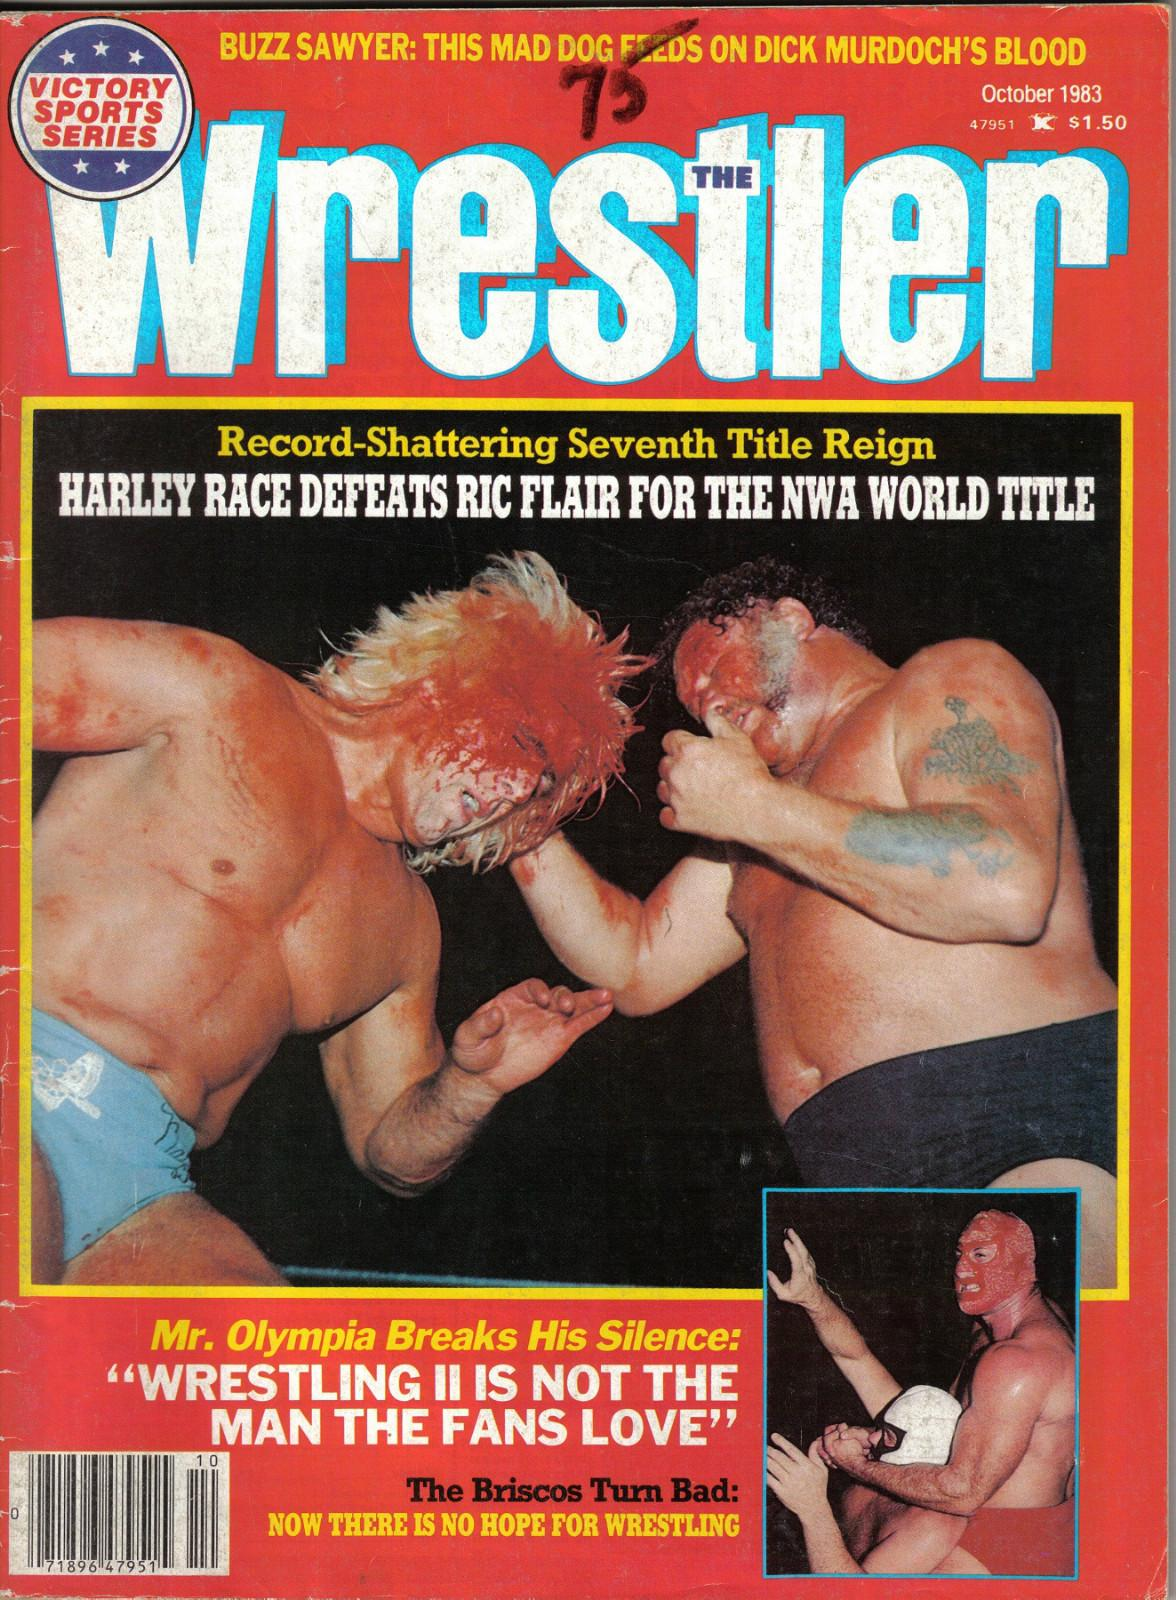 The Wrestler Wrestling Magazine October 1983 Harley Race Ric Flair wwe wwf wcw | eBay